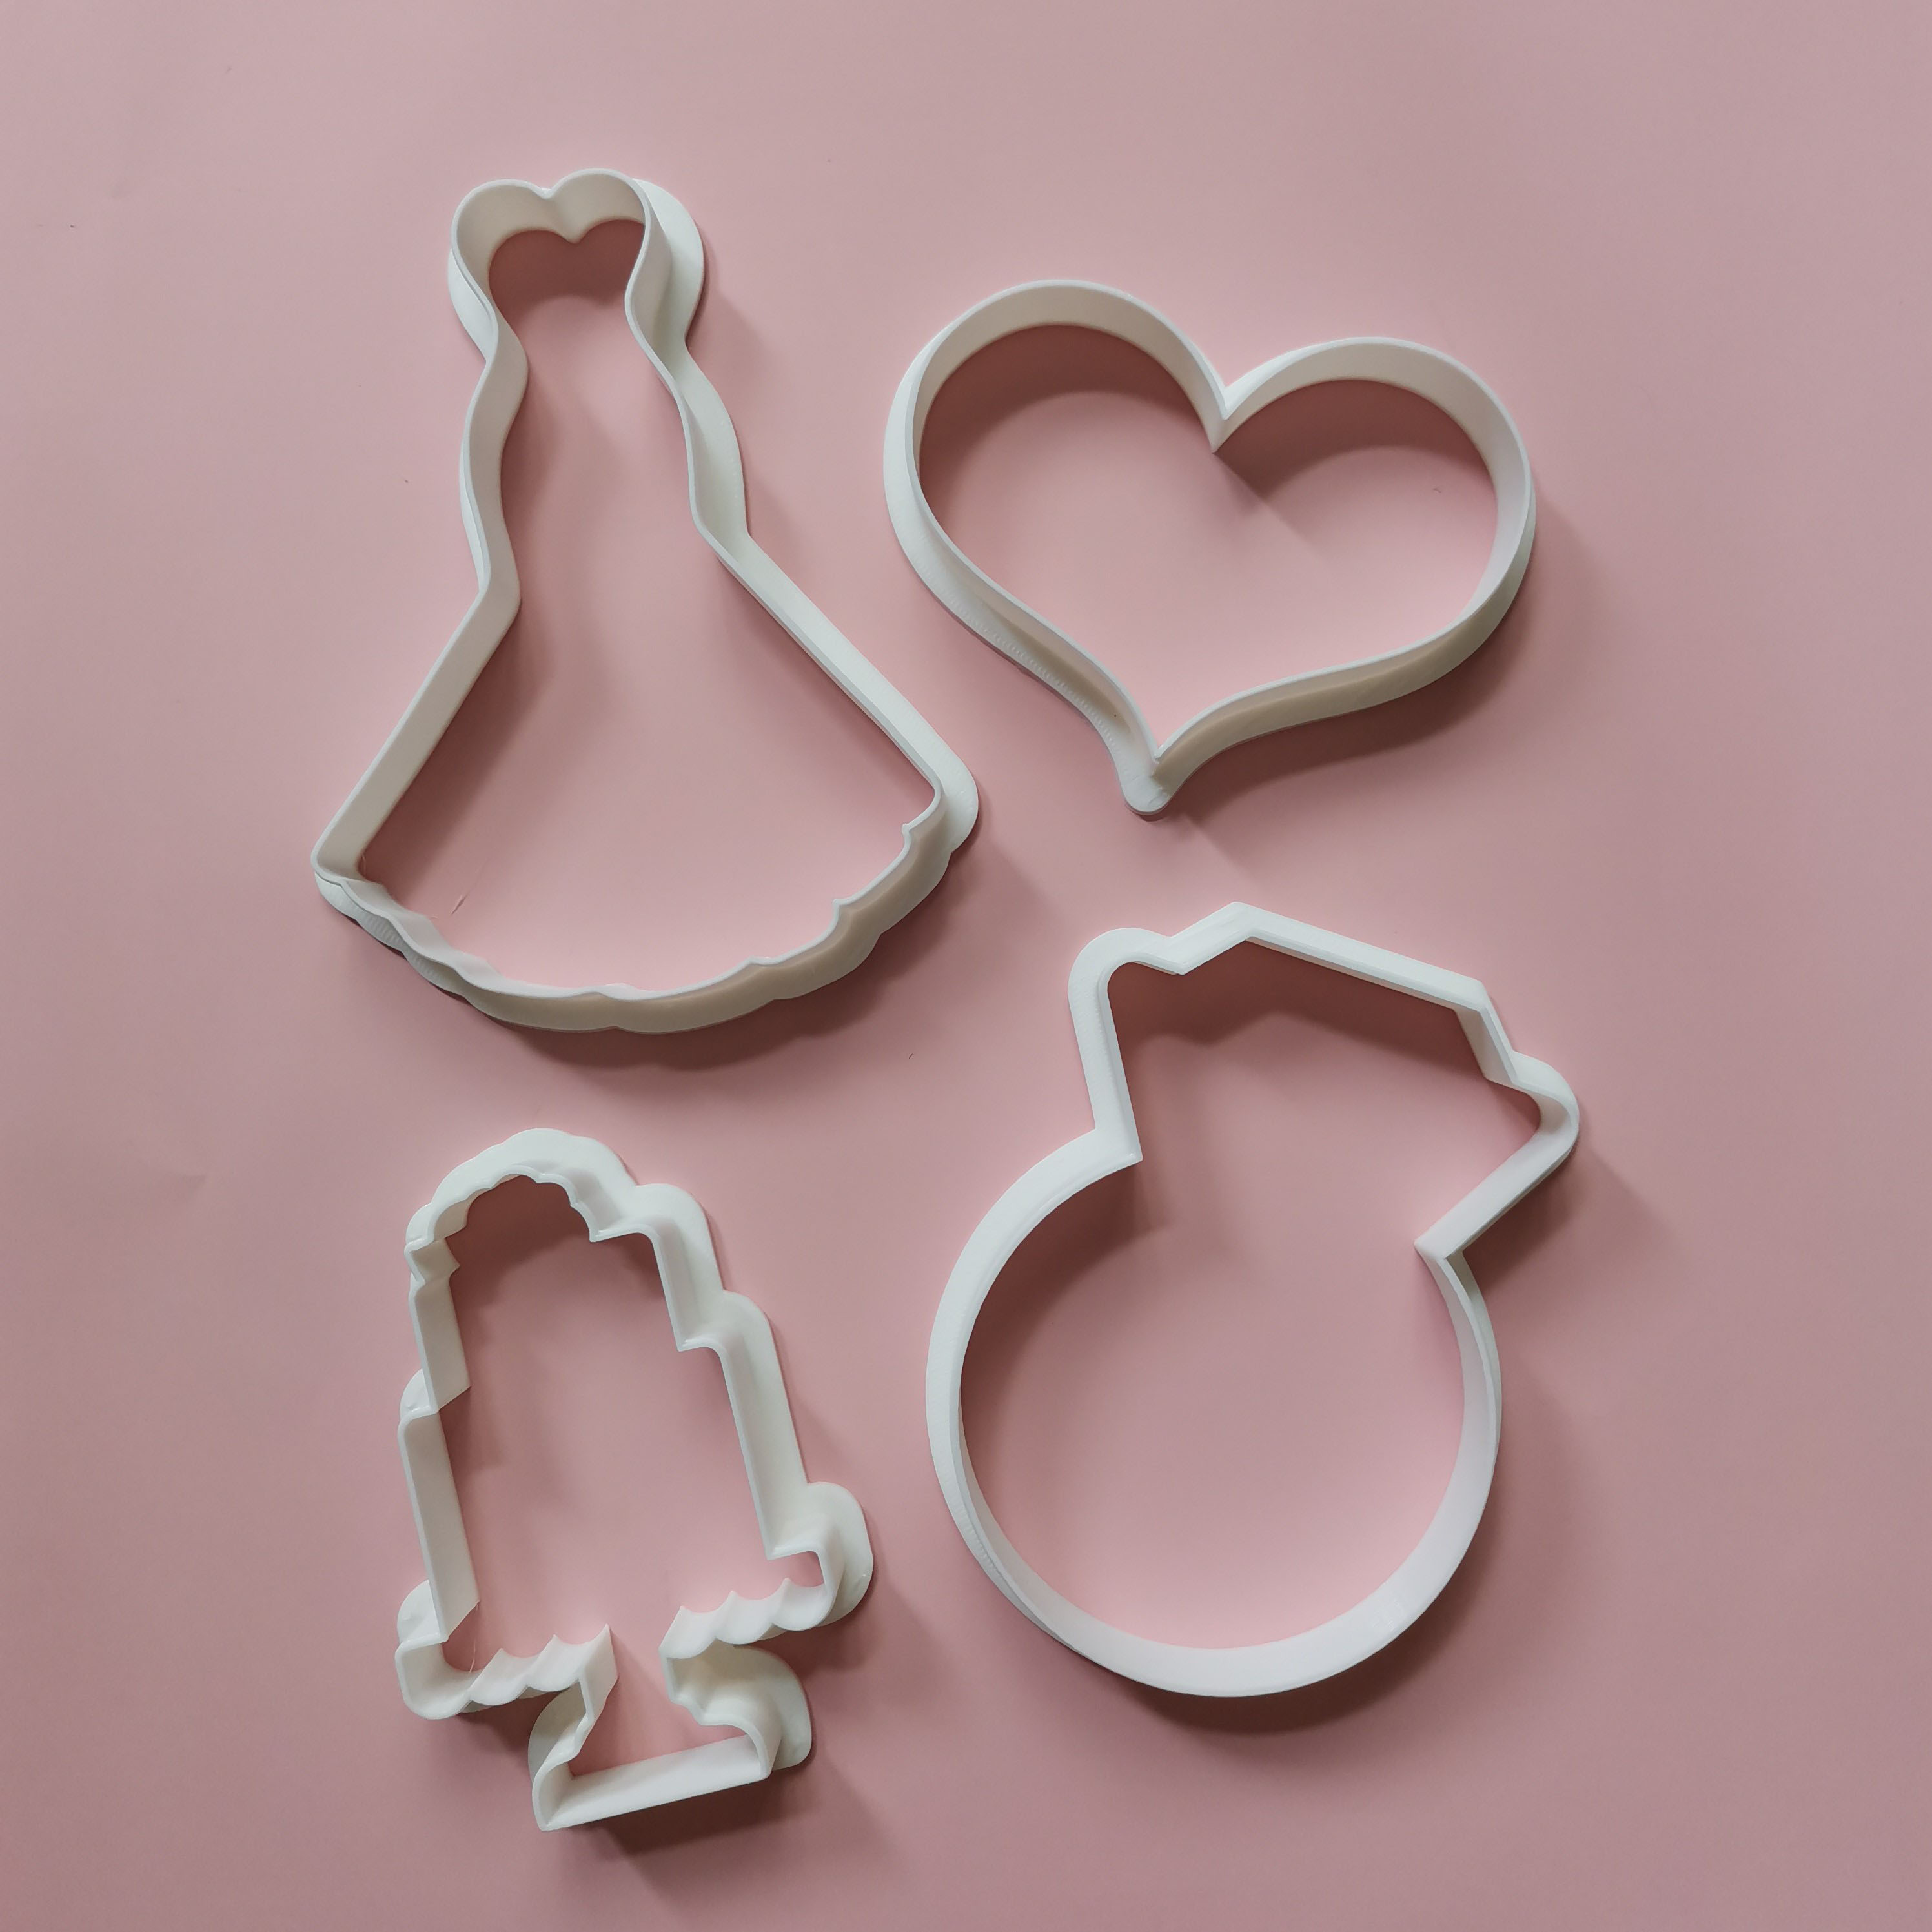 cookies and charms custom cutter